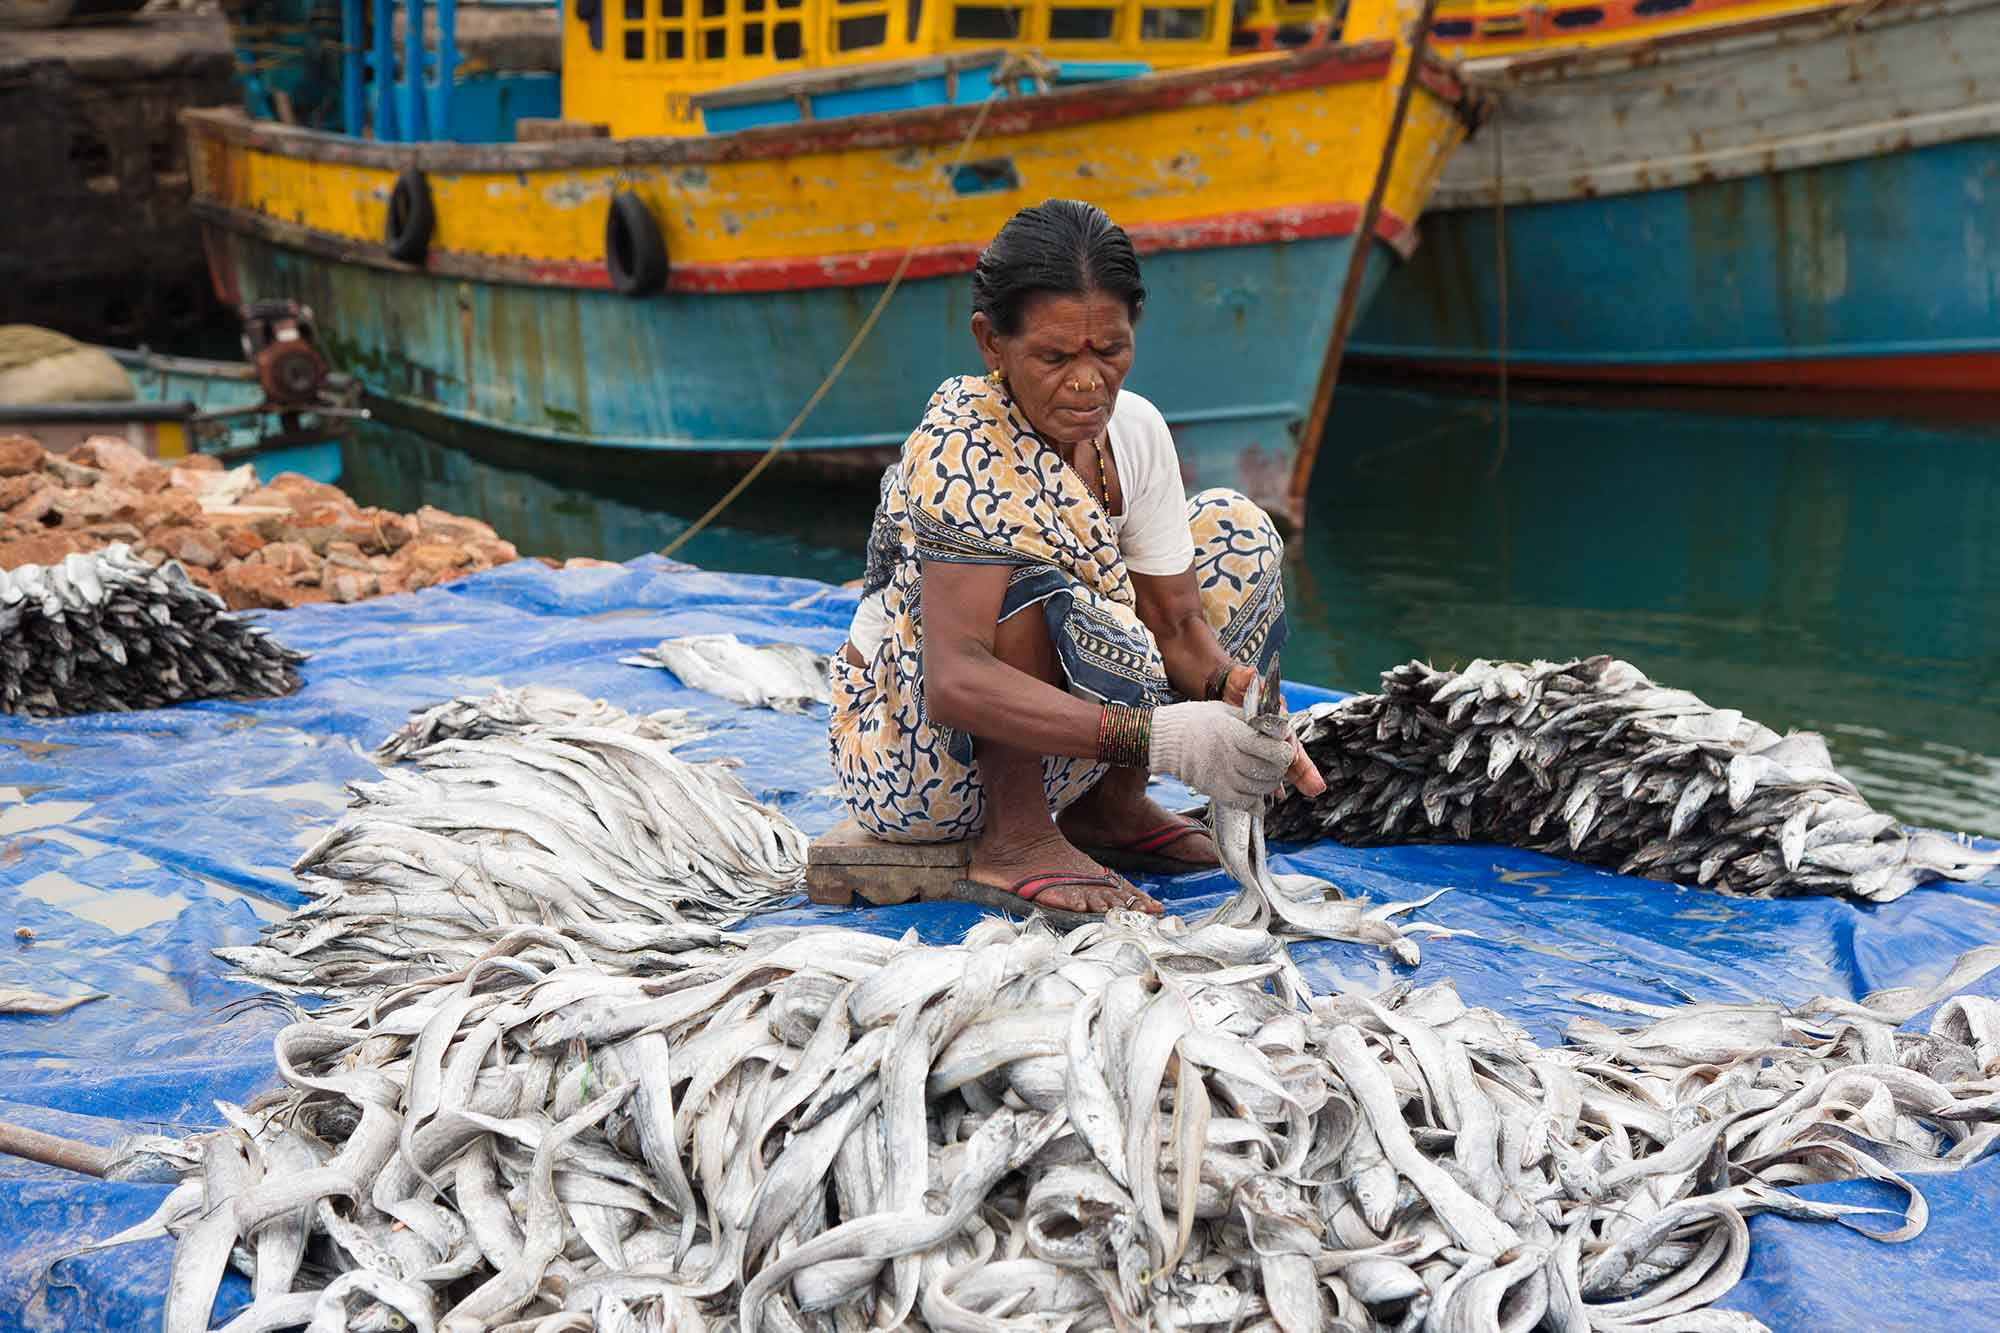 woman-fish-market-harbour-visakhapatnam-india